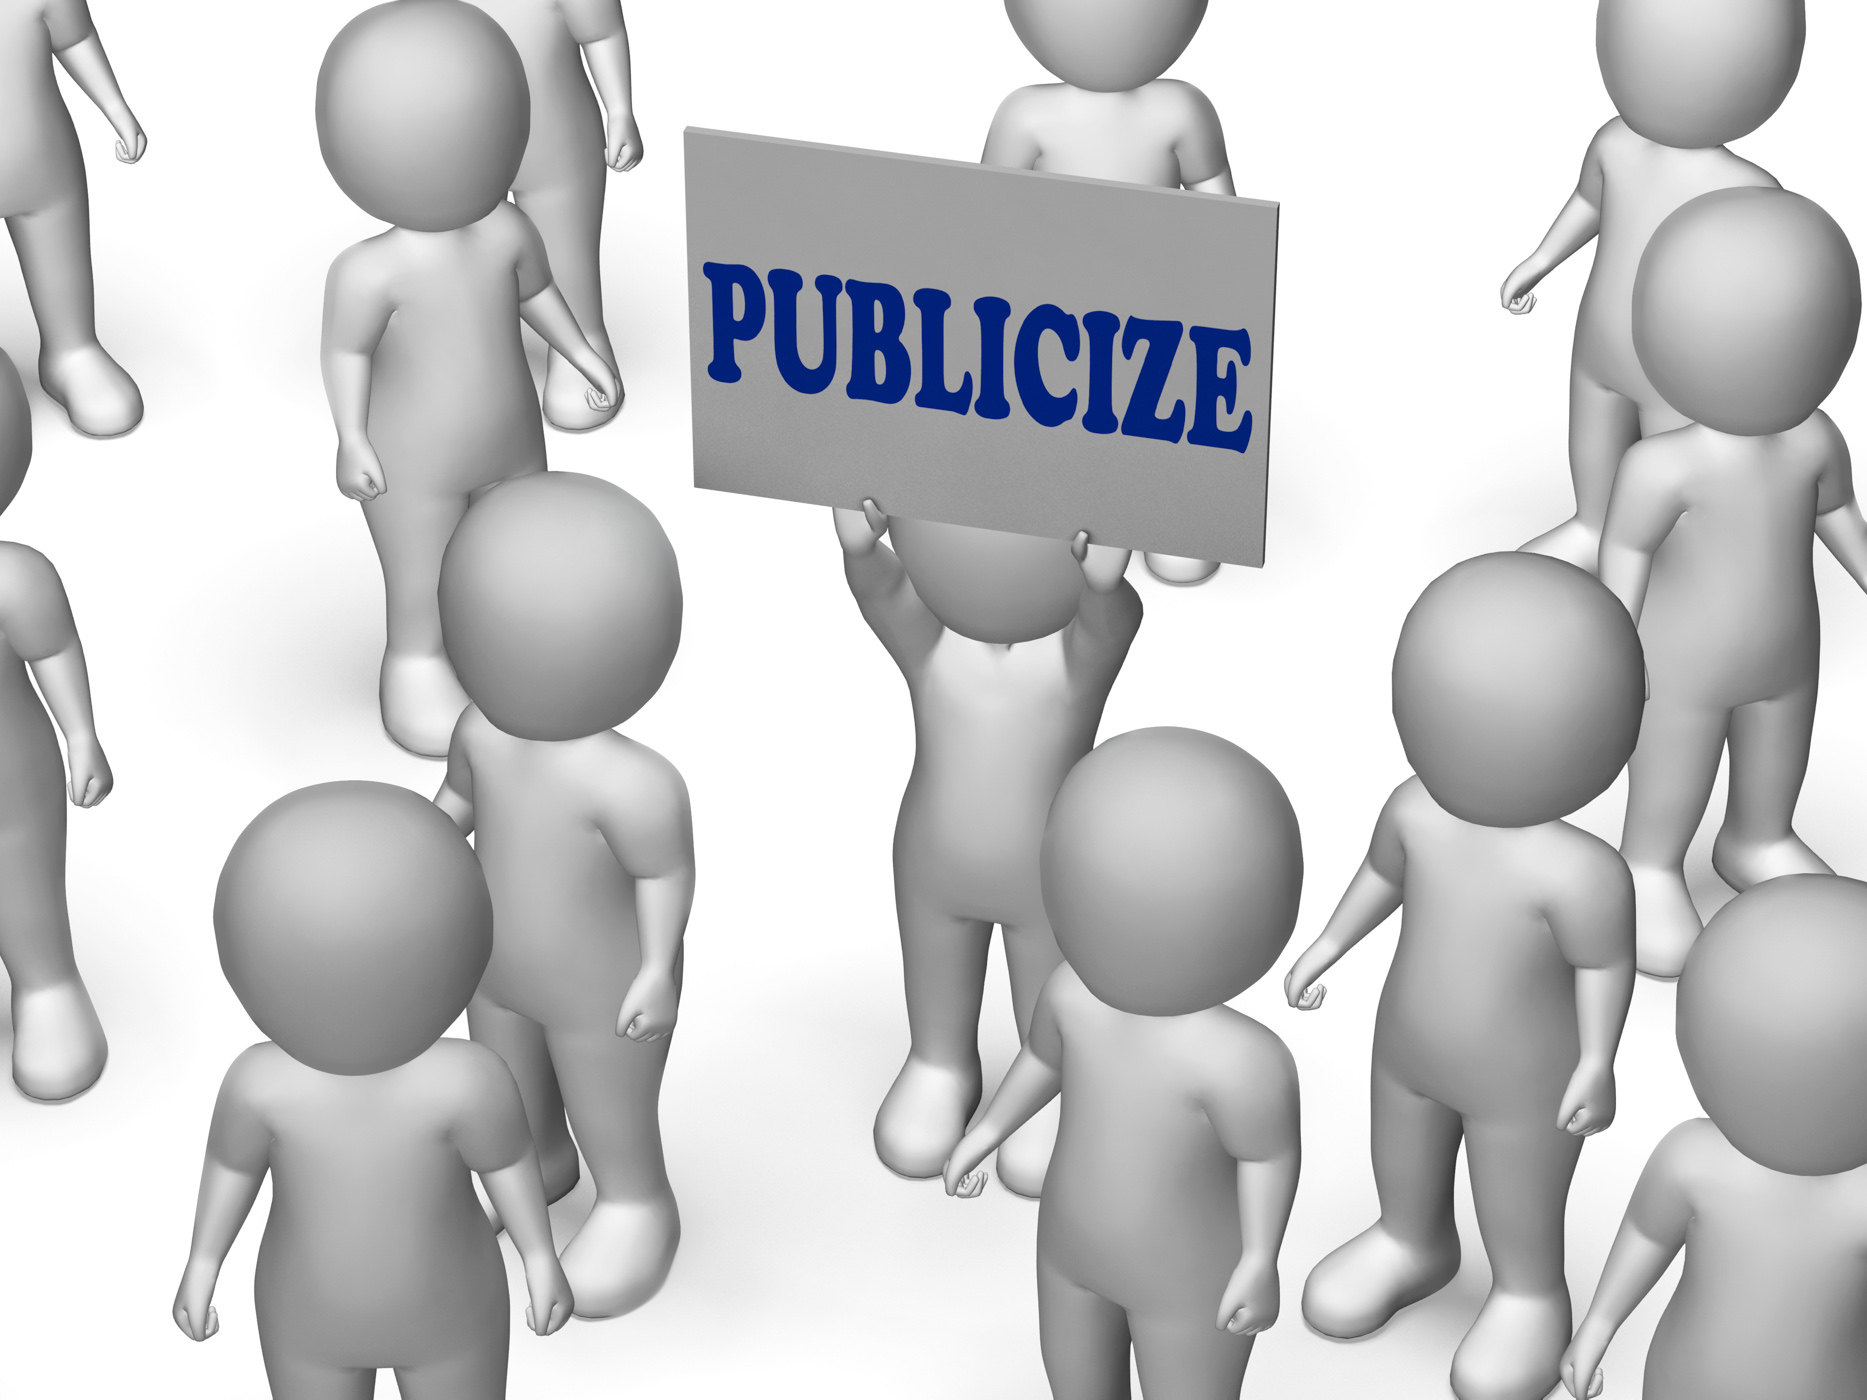 Publicize board character shows product advertising or business public photo